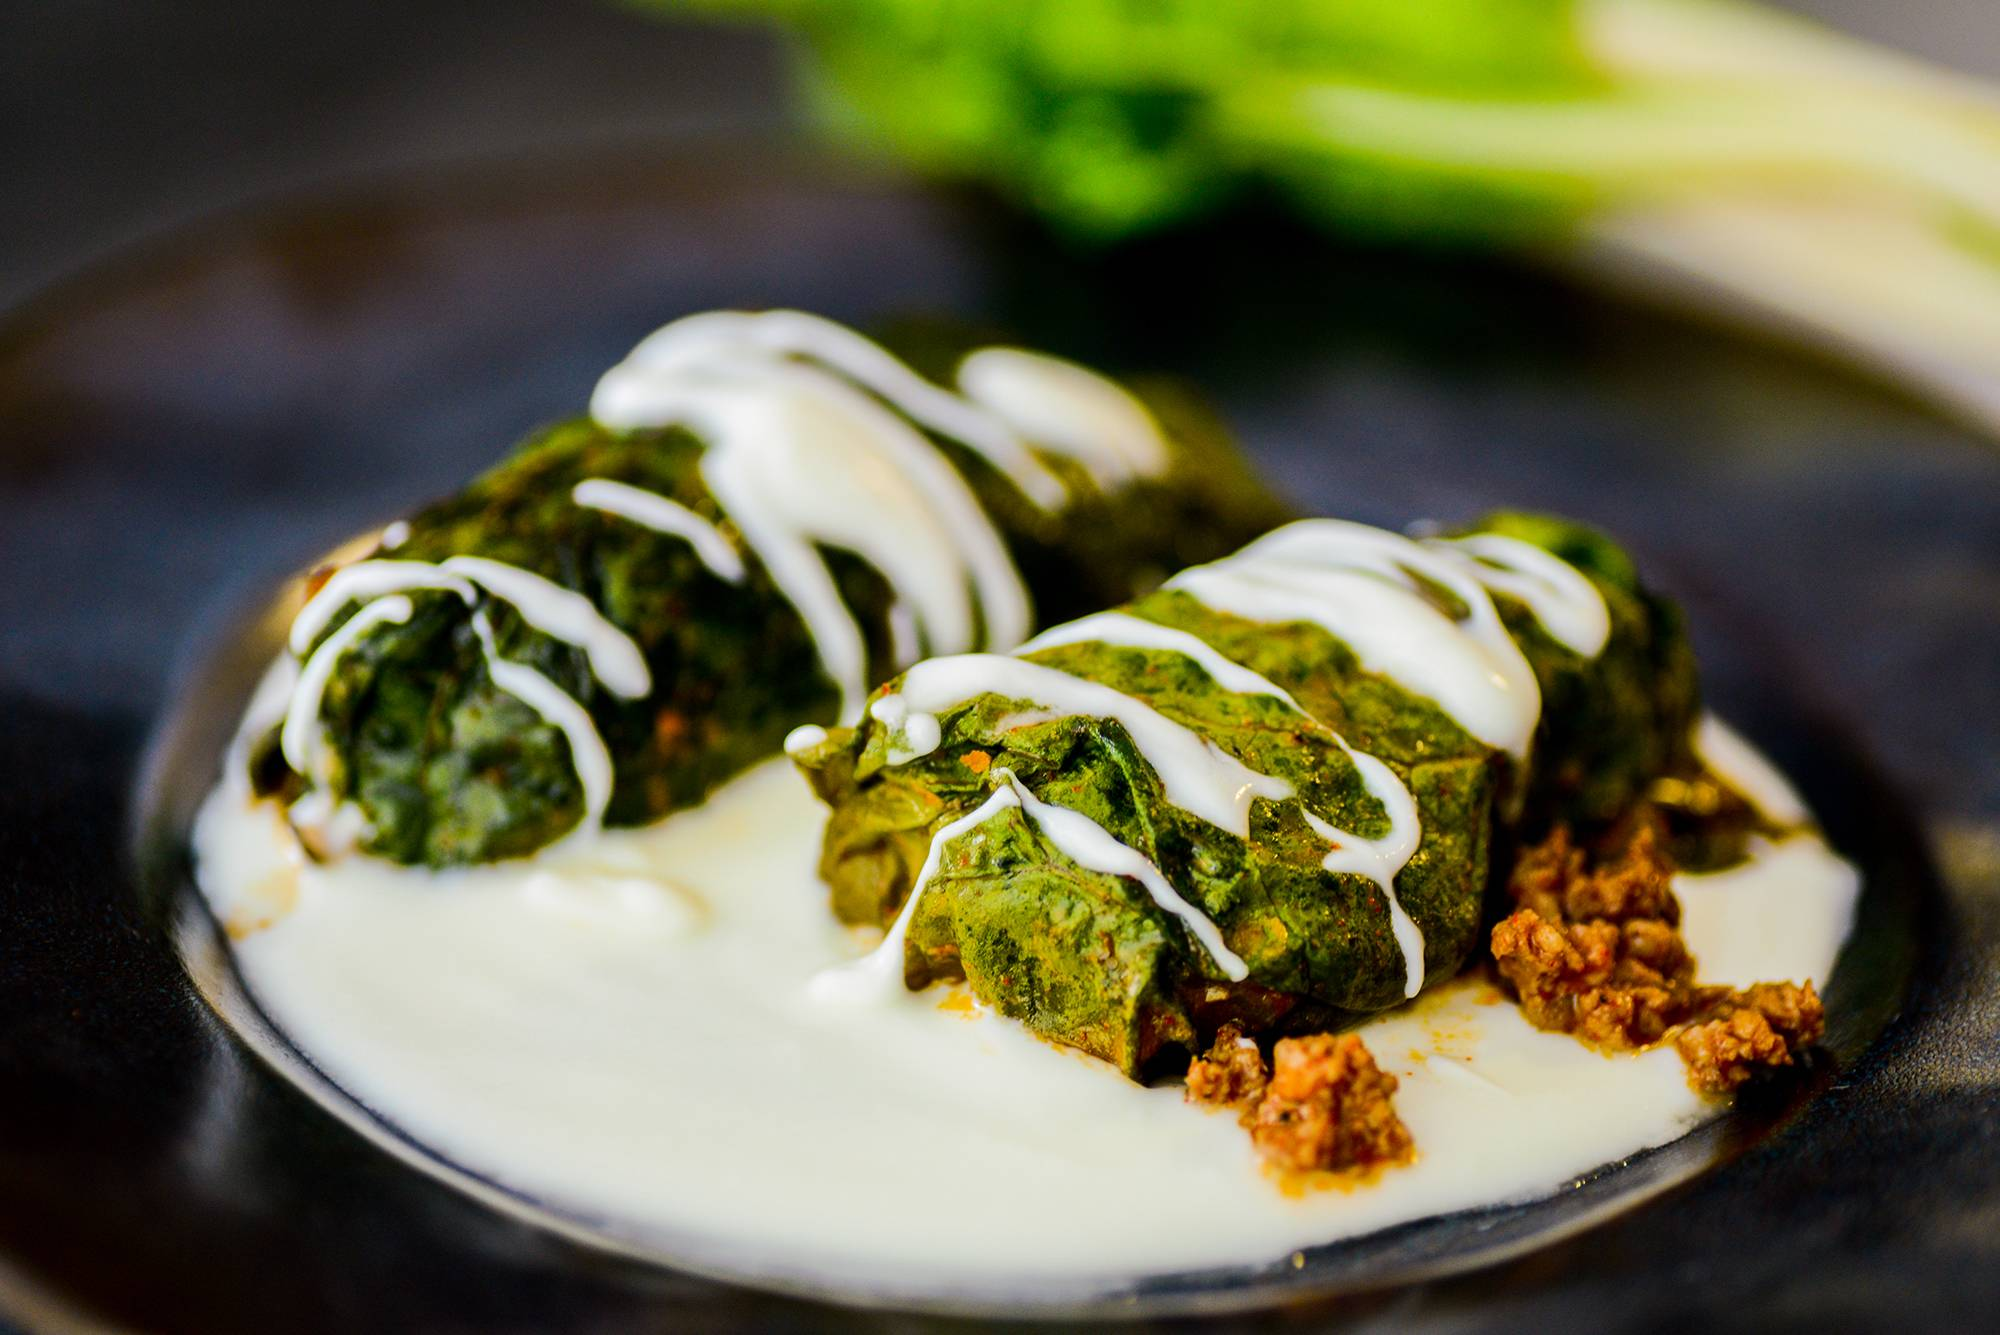 In Beef-Stuffed Swiss Chard Rolls with Yogurt Sauce, chard bundles are treated to hints of paprika and cinnamon.